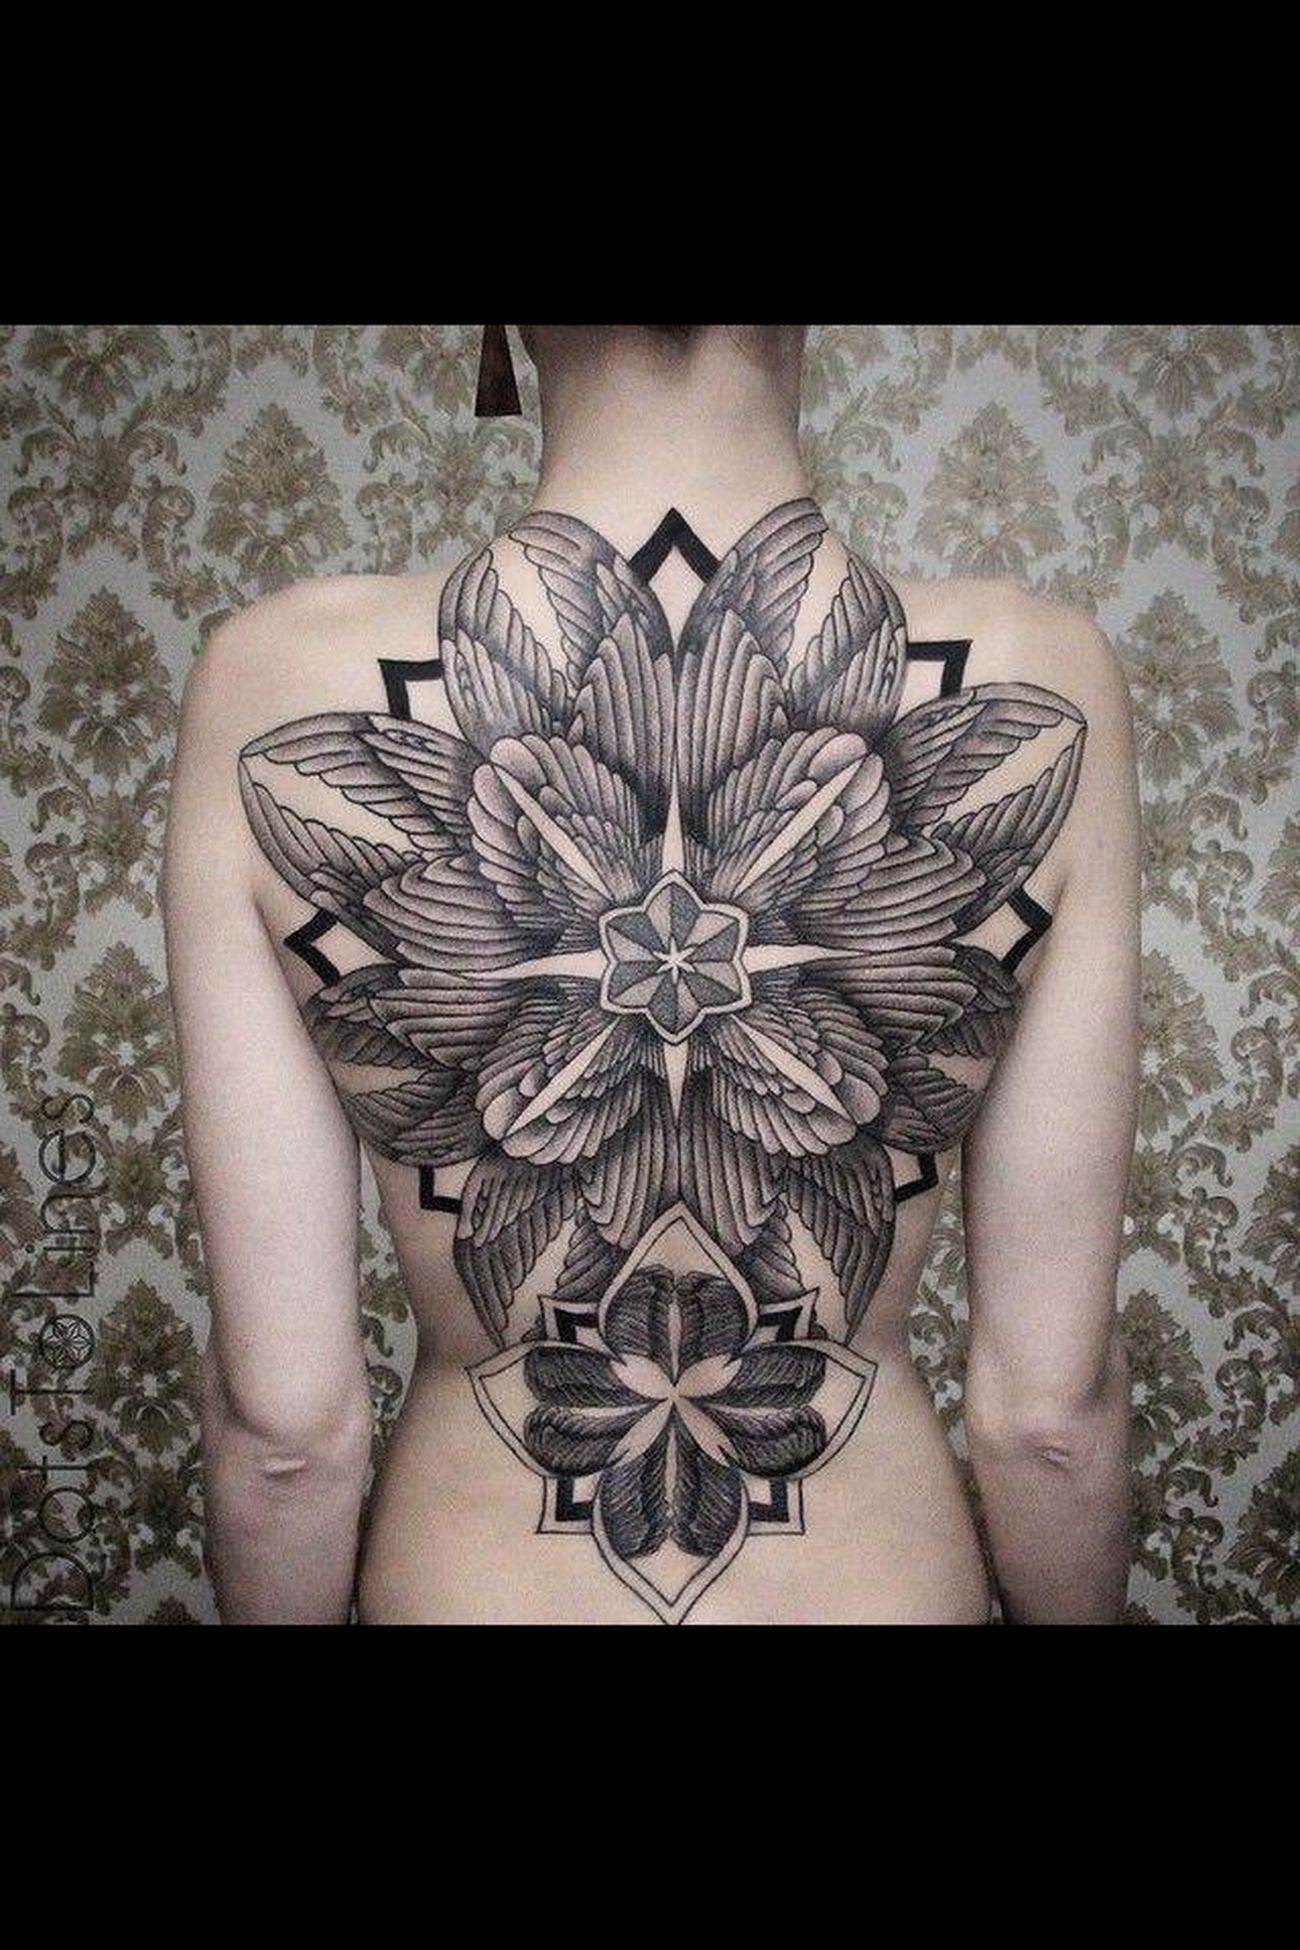 Flowers Tattooed Bodyart Inkedgirls Body And Soul Ink Inked Amazing Stunning Greatwork Lovely